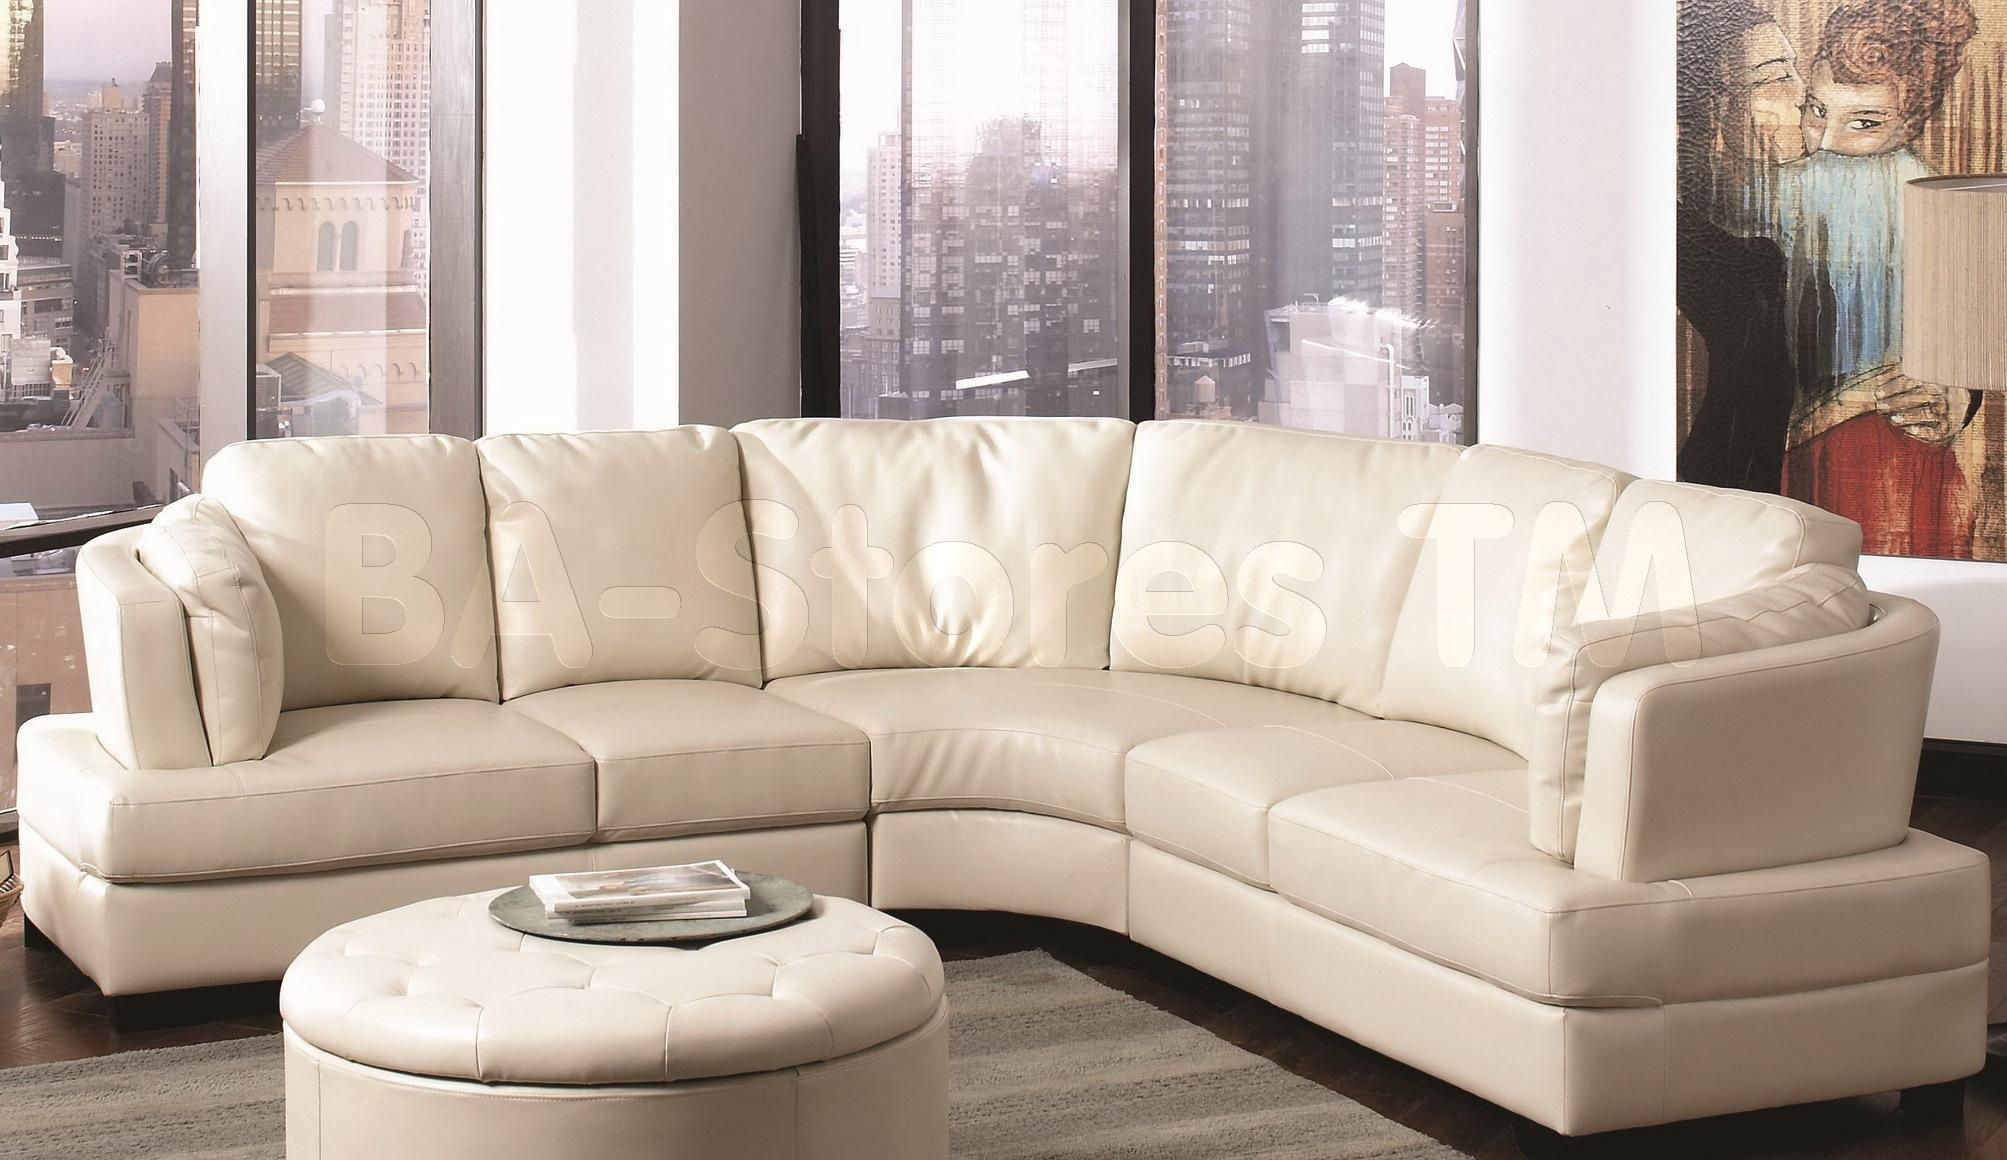 Furniture: Curved Sectional Sofa | Vintage Curved Sofa | Curved Within Vintage Leather Sectional Sofas (Image 4 of 20)